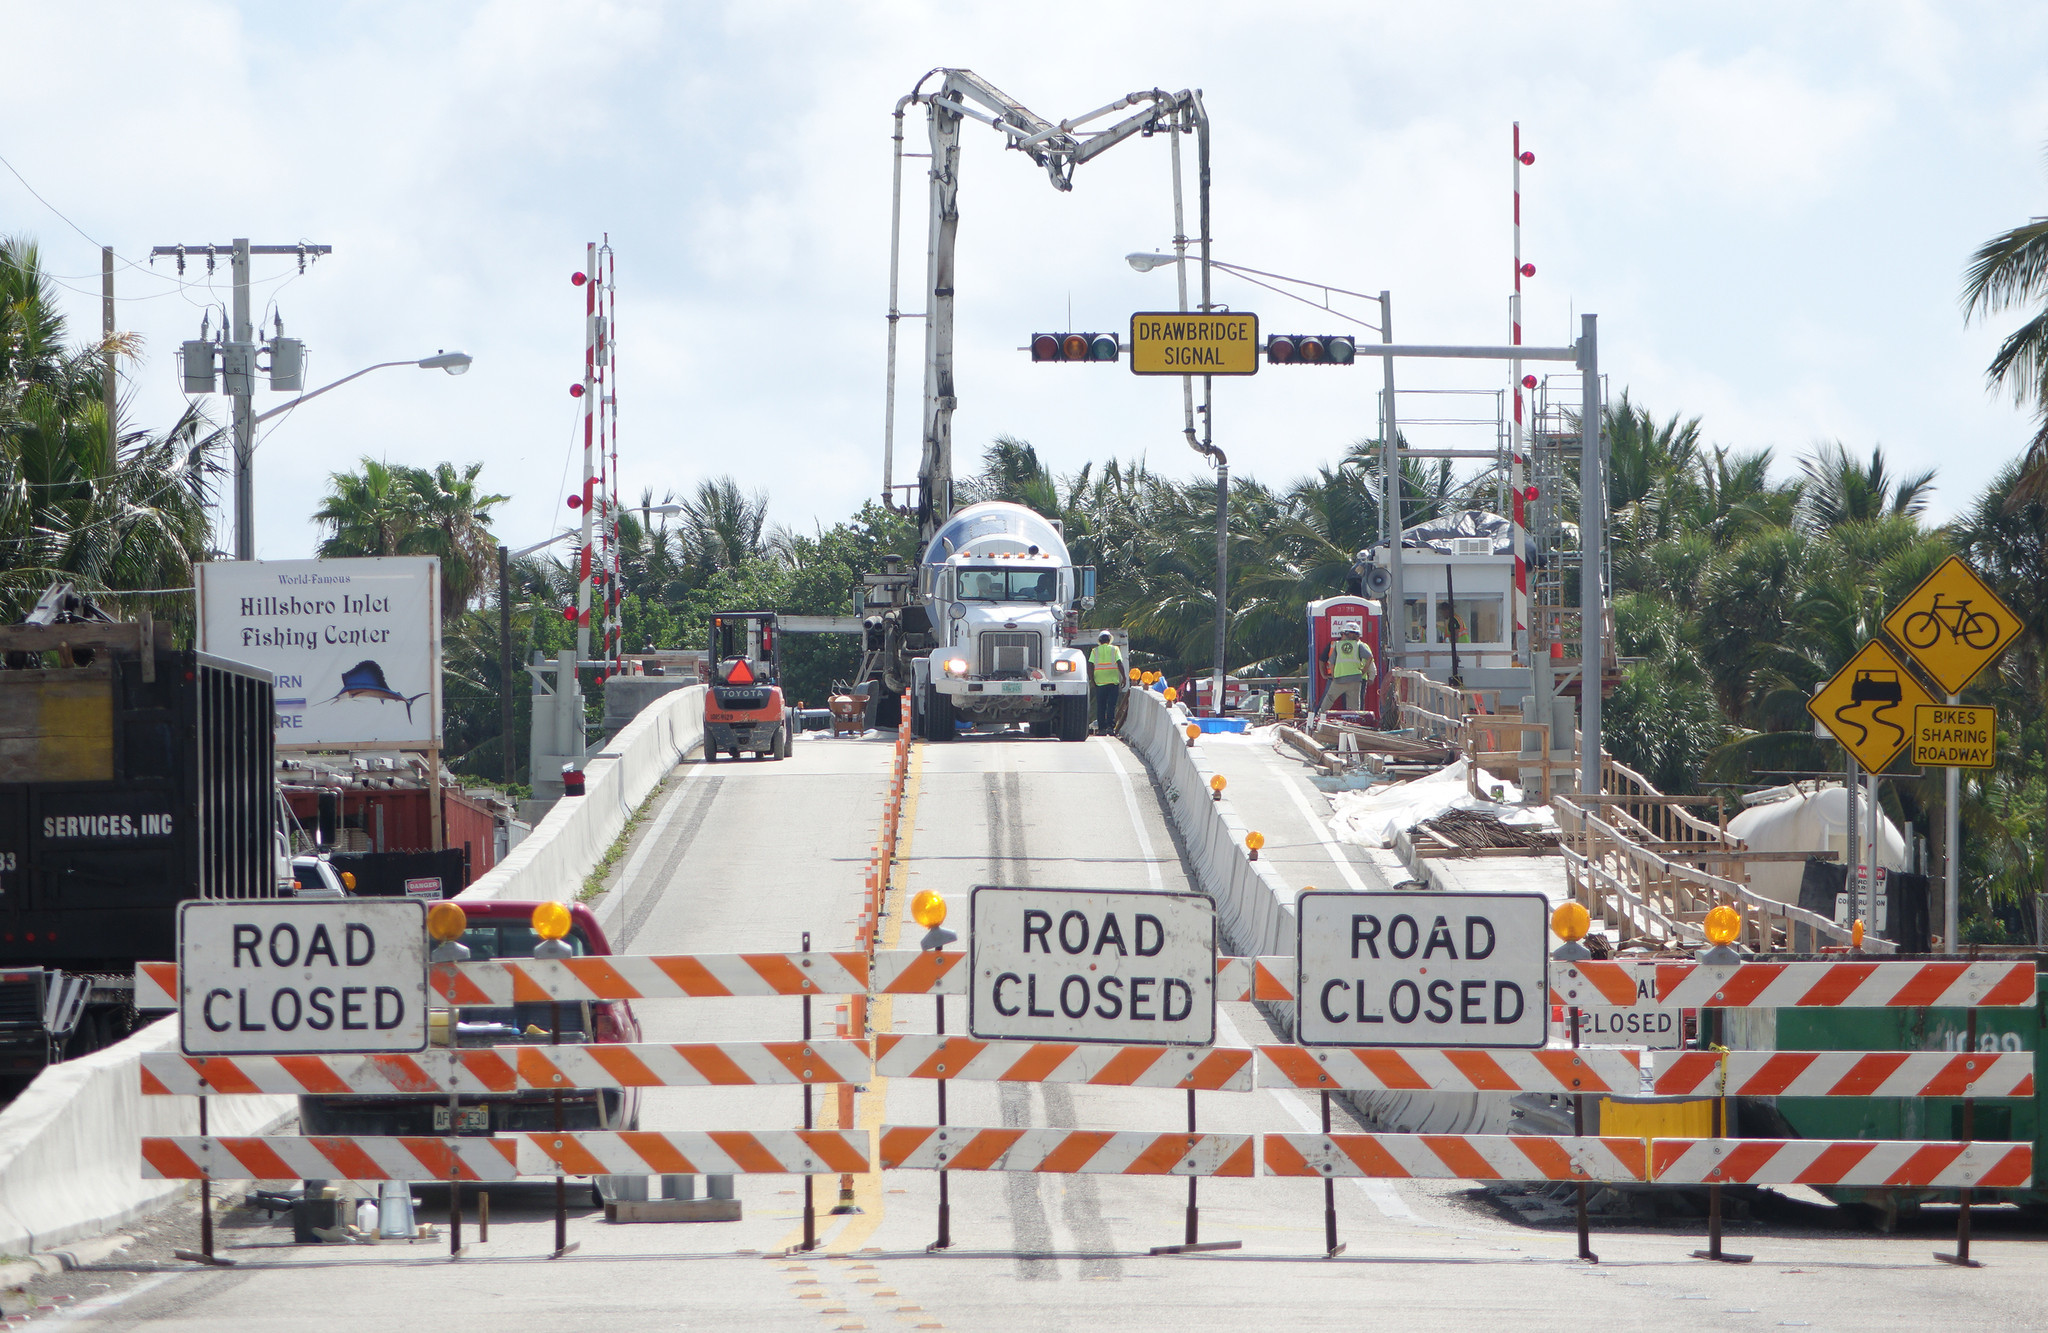 A1a bridge over hillsboro inlet closing from june 17 to july 3 a1a bridge over hillsboro inlet closing from june 17 to july 3 sun sentinel nvjuhfo Gallery